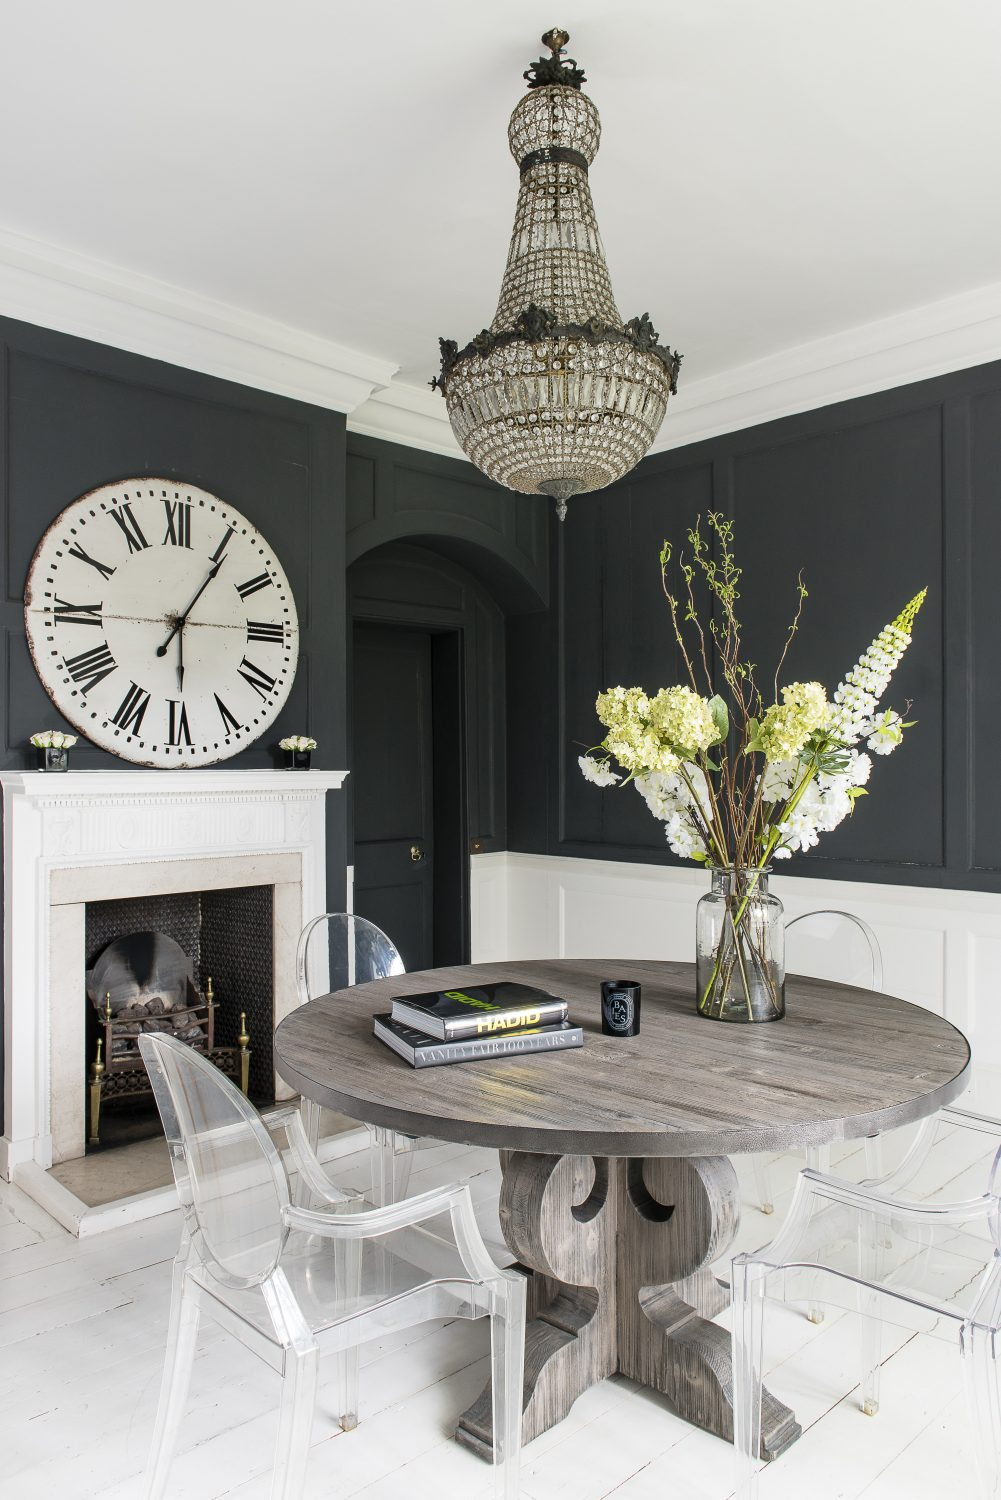 In the dining room Philippe Starck Ghost chairs set off the black walls. The clock on the mantelpiece is an antique station clock from a London market. The chandelier is from a vintage shop in Notting Hill